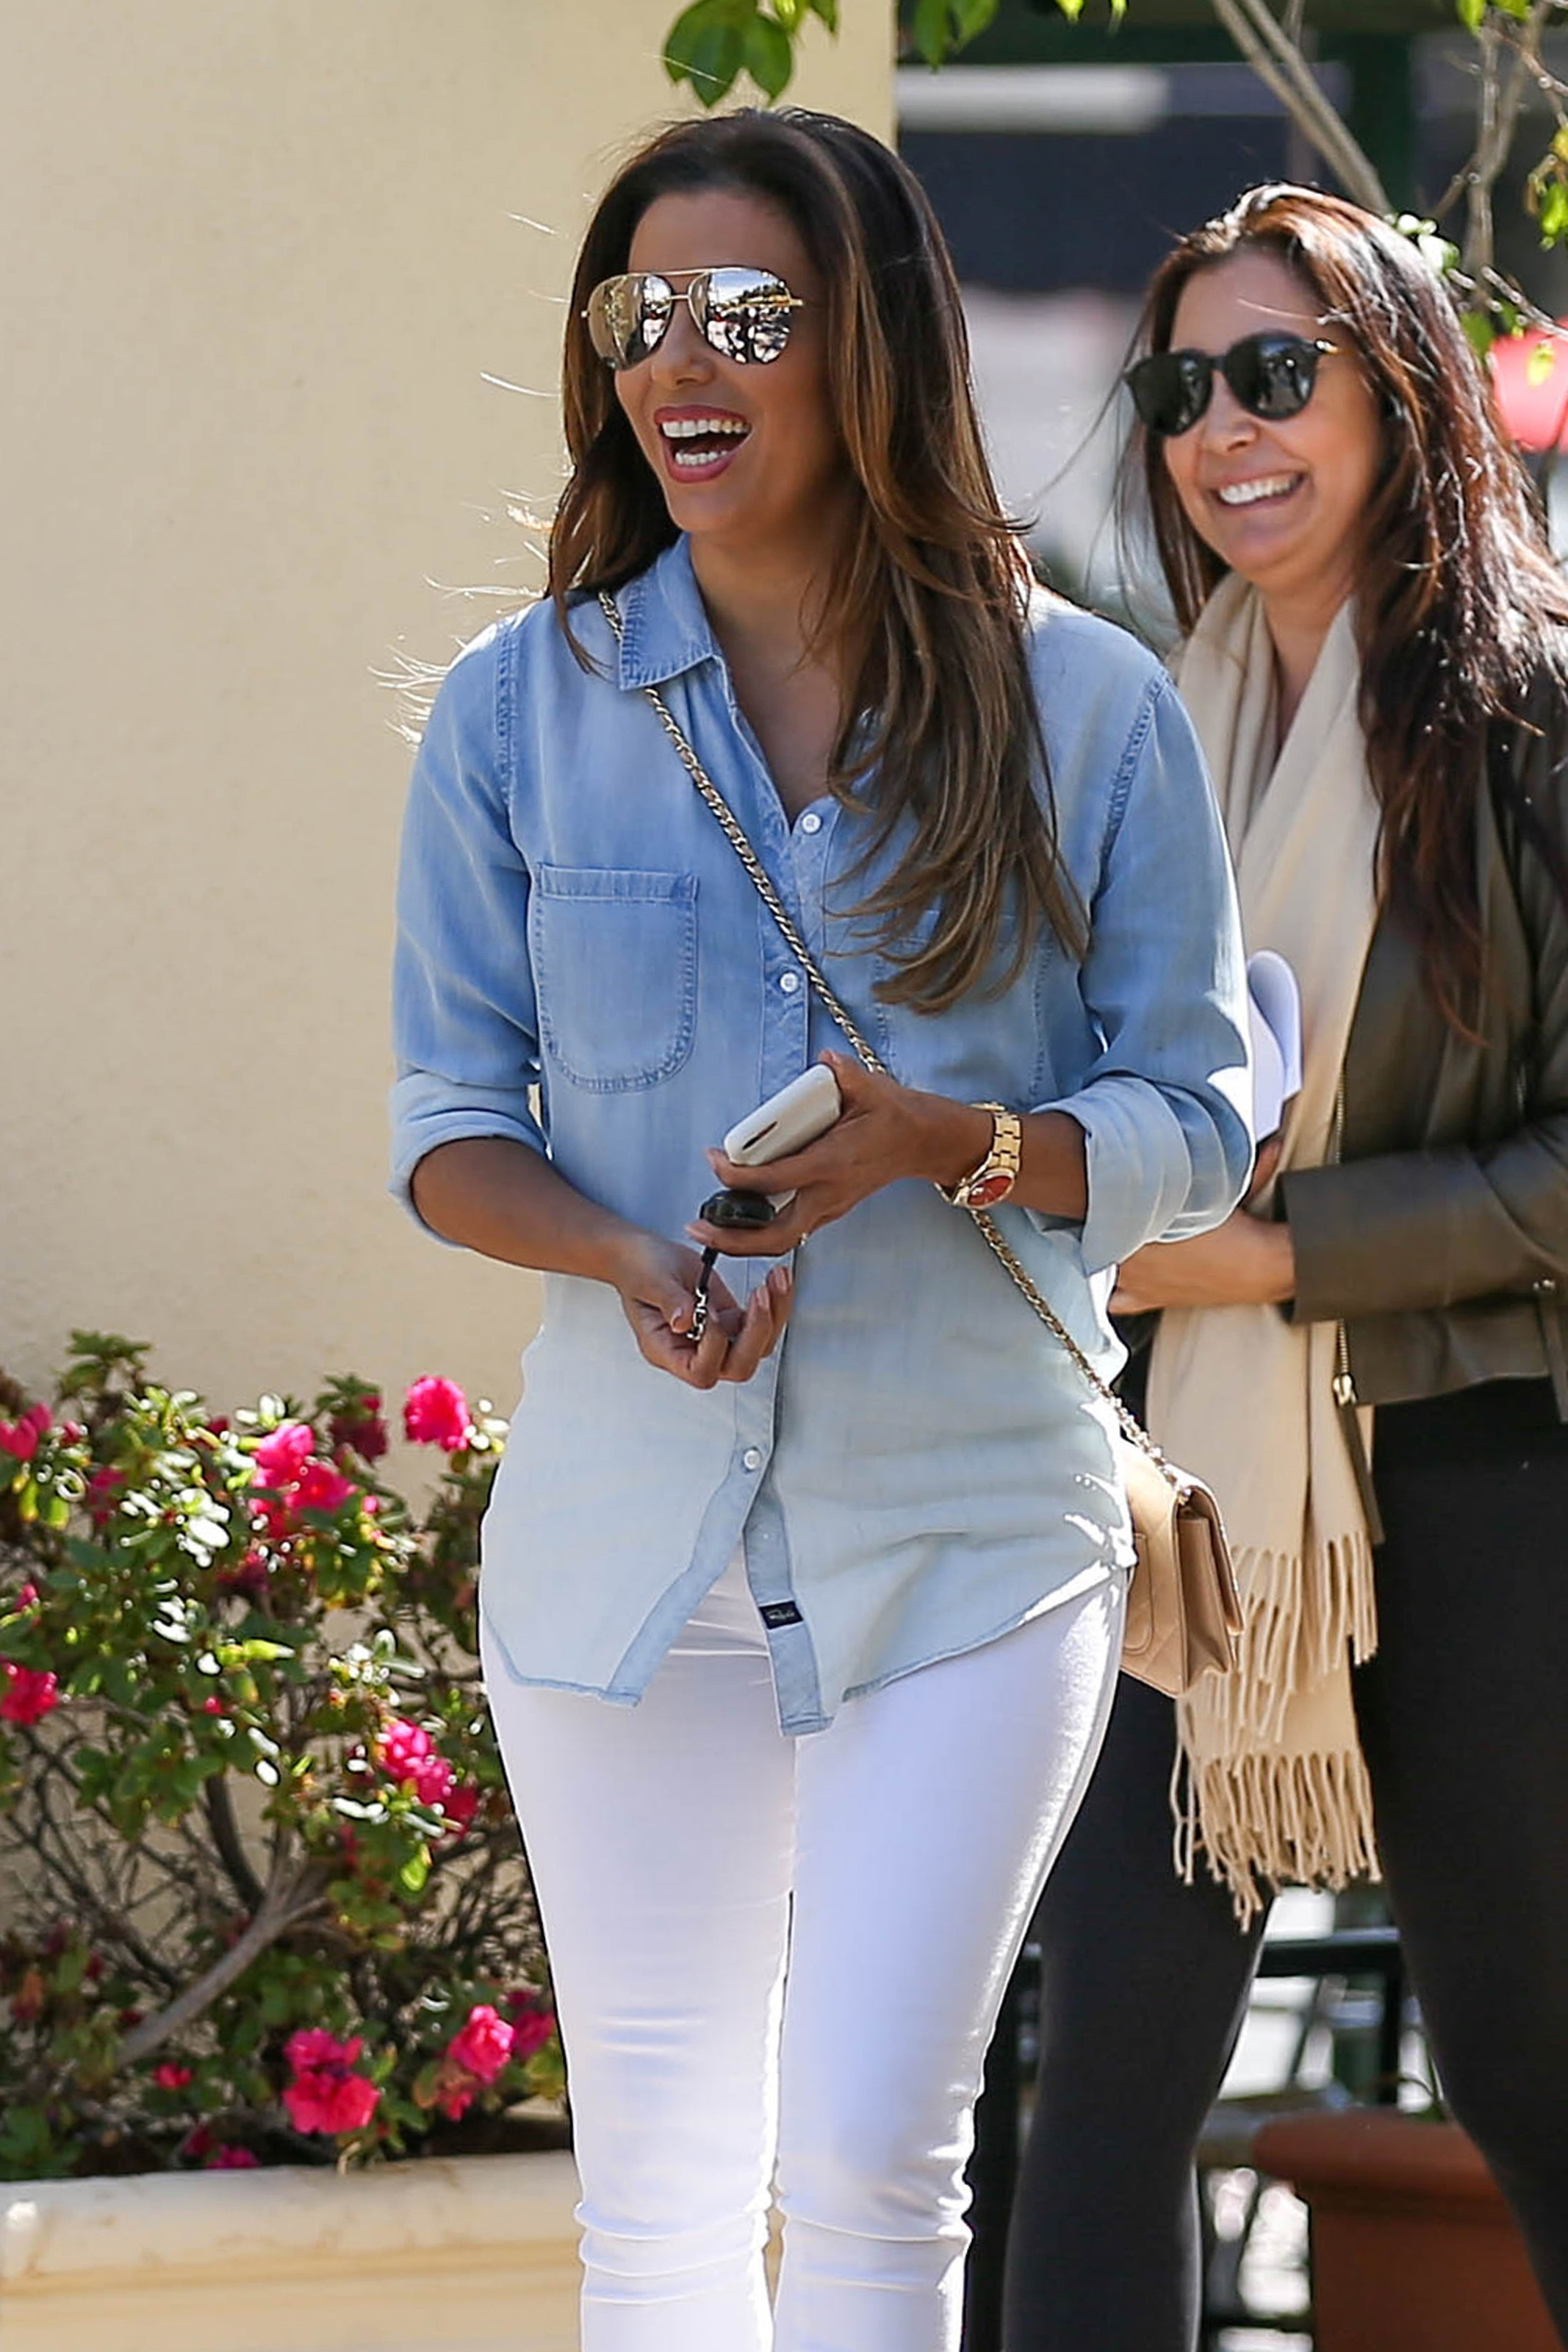 Eva Longoria Cuts A Chic Figure In Ombre Denim Shirt And White Pants For Girls Lunch